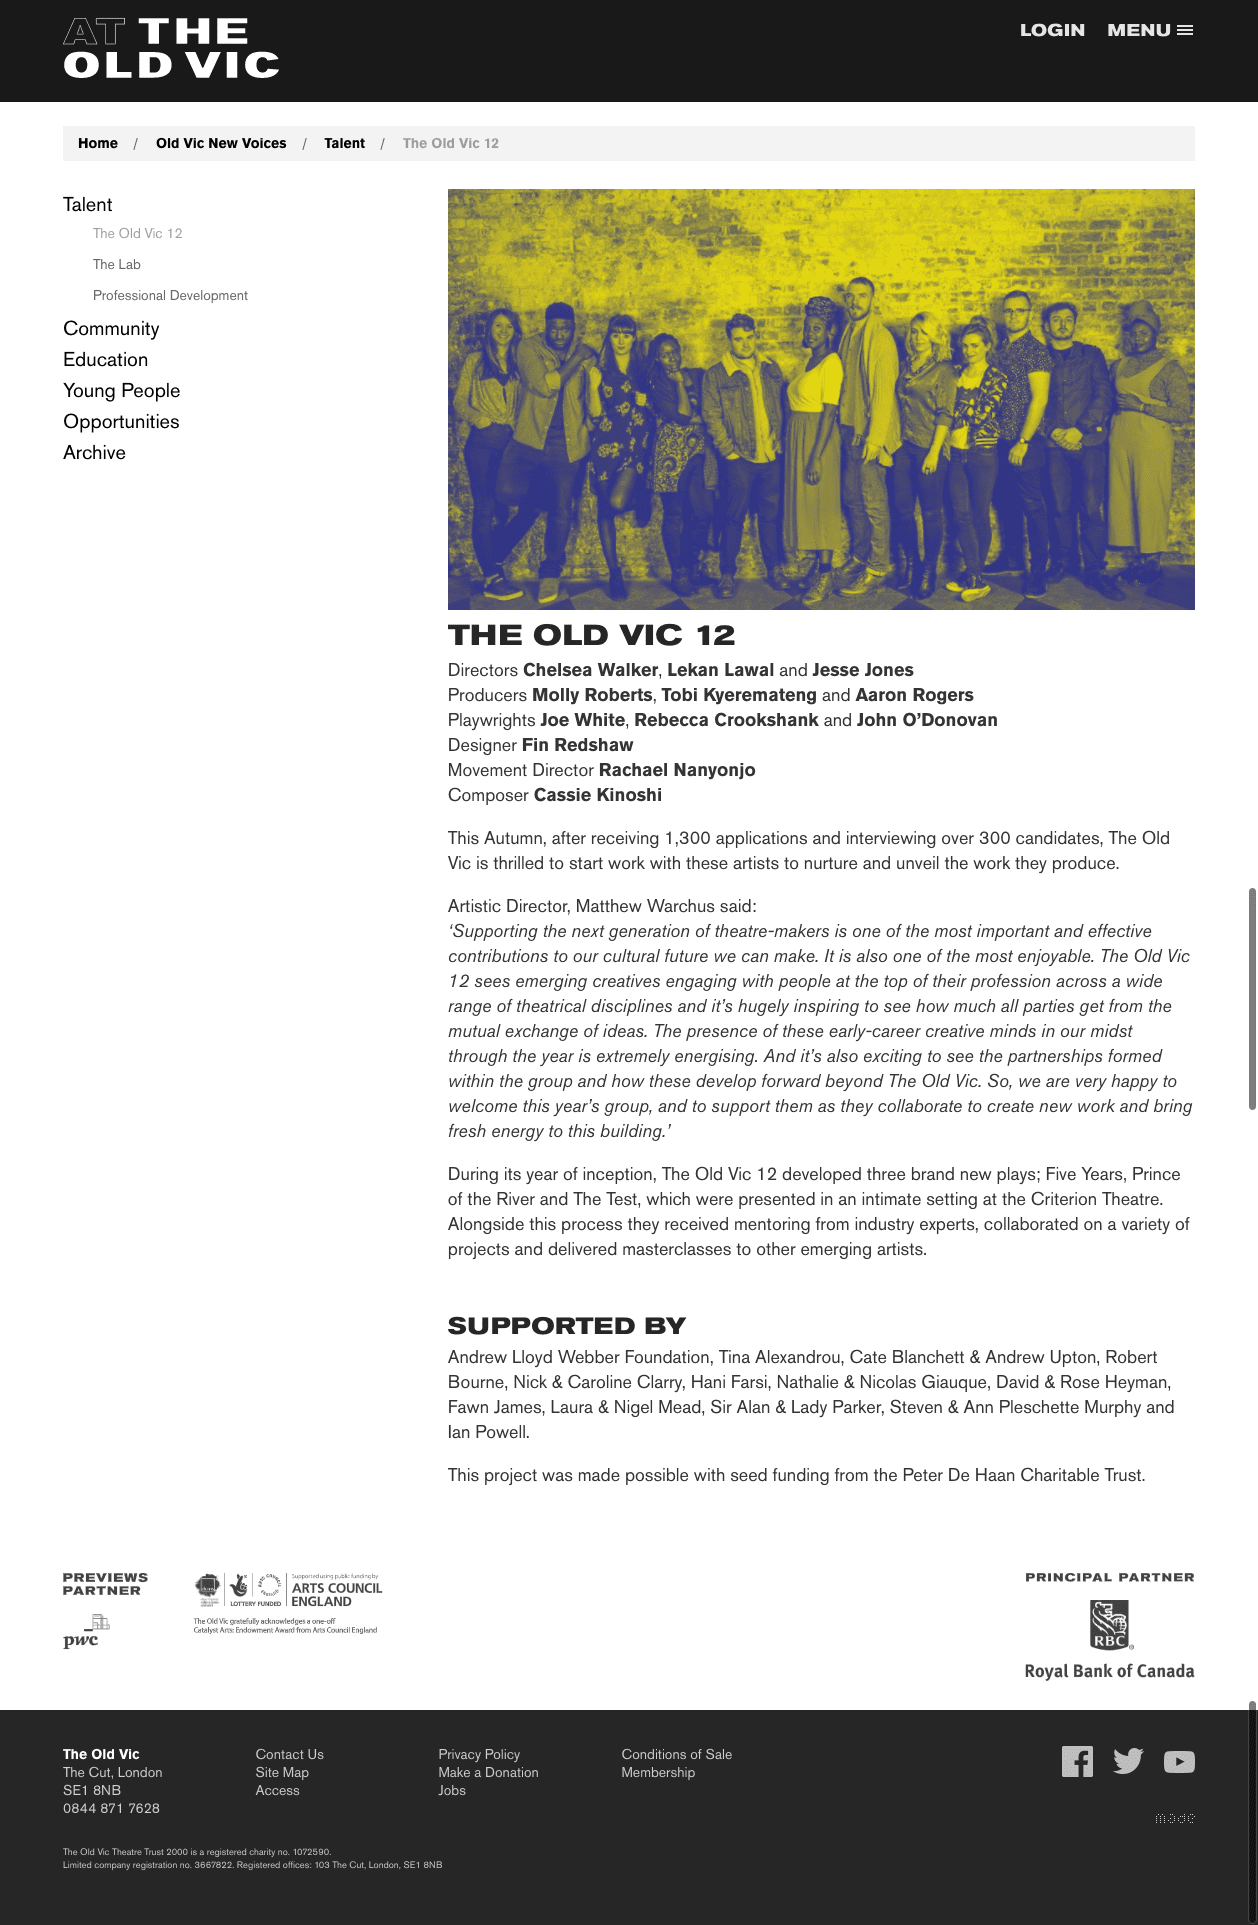 The Old Vic 12 press release